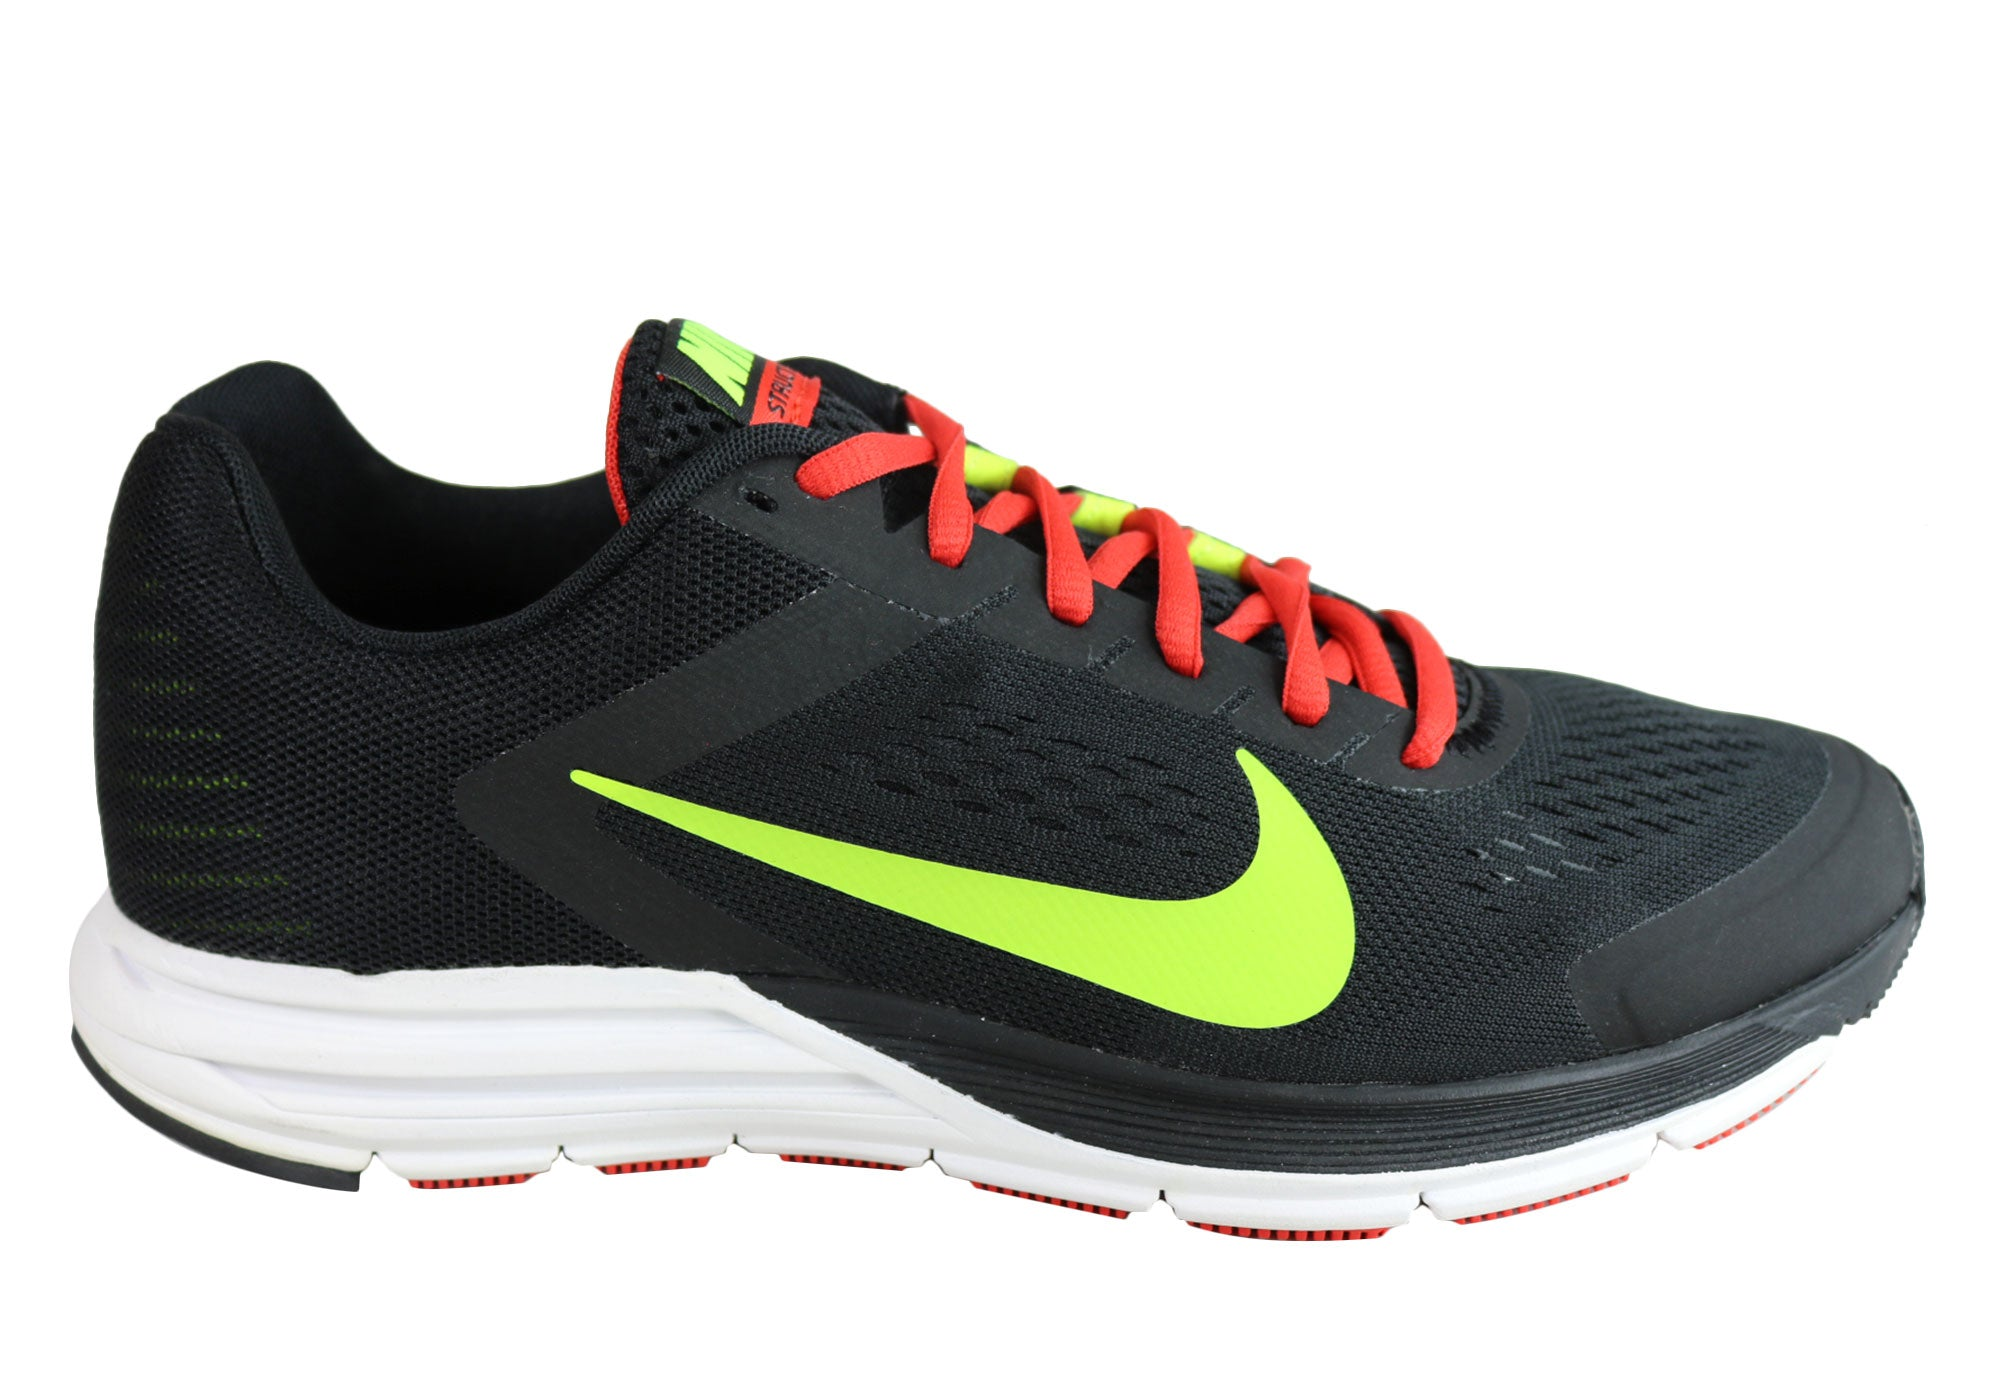 newest 31a75 5fa3c Nike Zoom Structure+17 Mens Comfortable Athletic Shoes ...